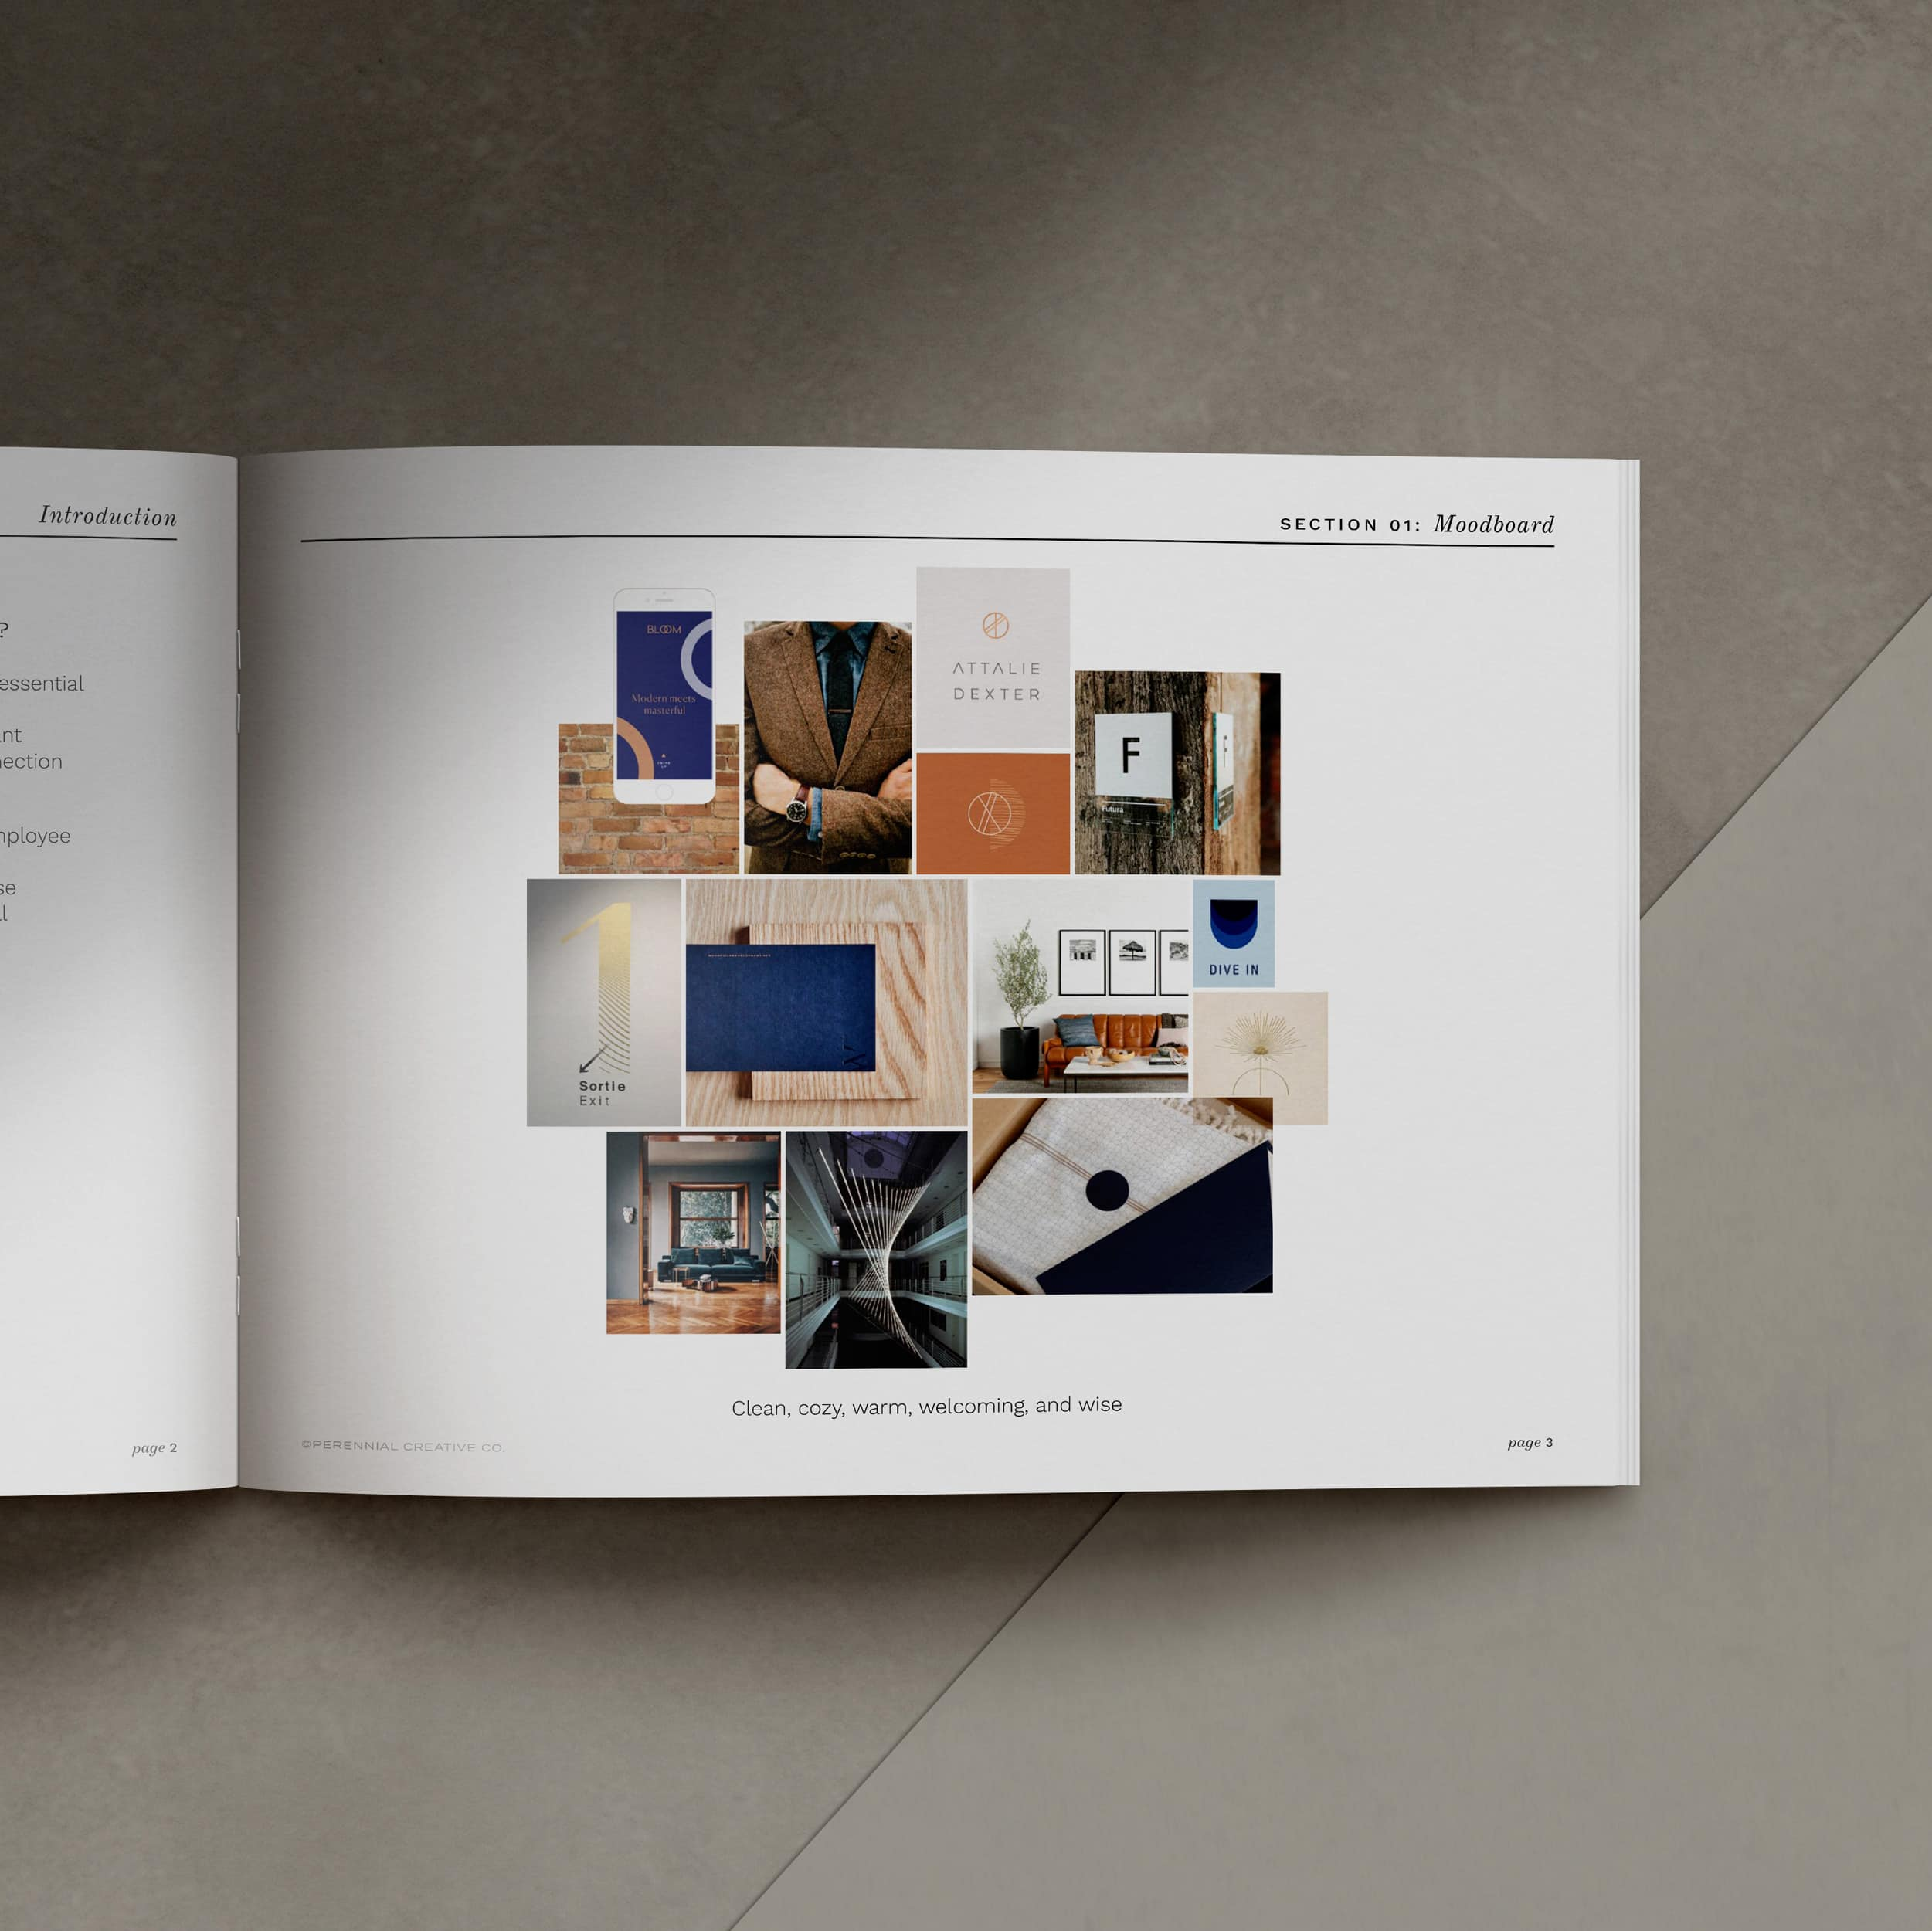 Avenues Unlimited moodboard in a booklet laid out on a gray background